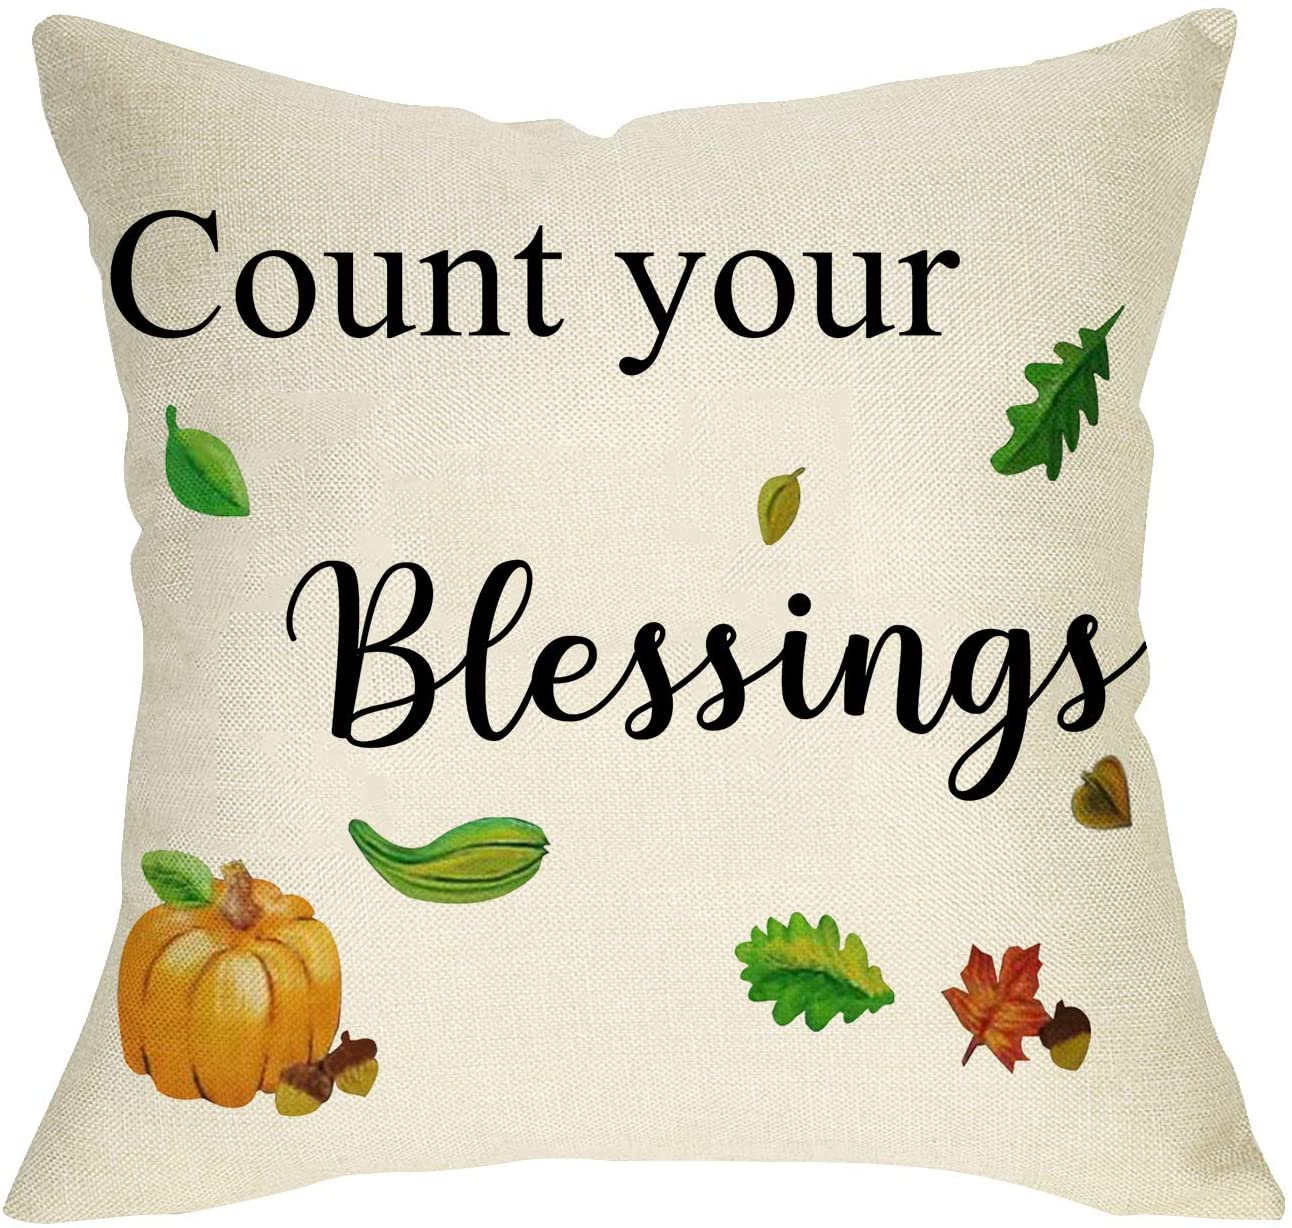 Softxpp Count Your Blessings Decorative Throw Pillow Cover, Farmhouse Quote Fall Pumpkin Cushion Case Seasonal Home Decorations Thanksgiving Square Pillowcase Autumn Decor for Sofa Couch 18 x 18 Inch